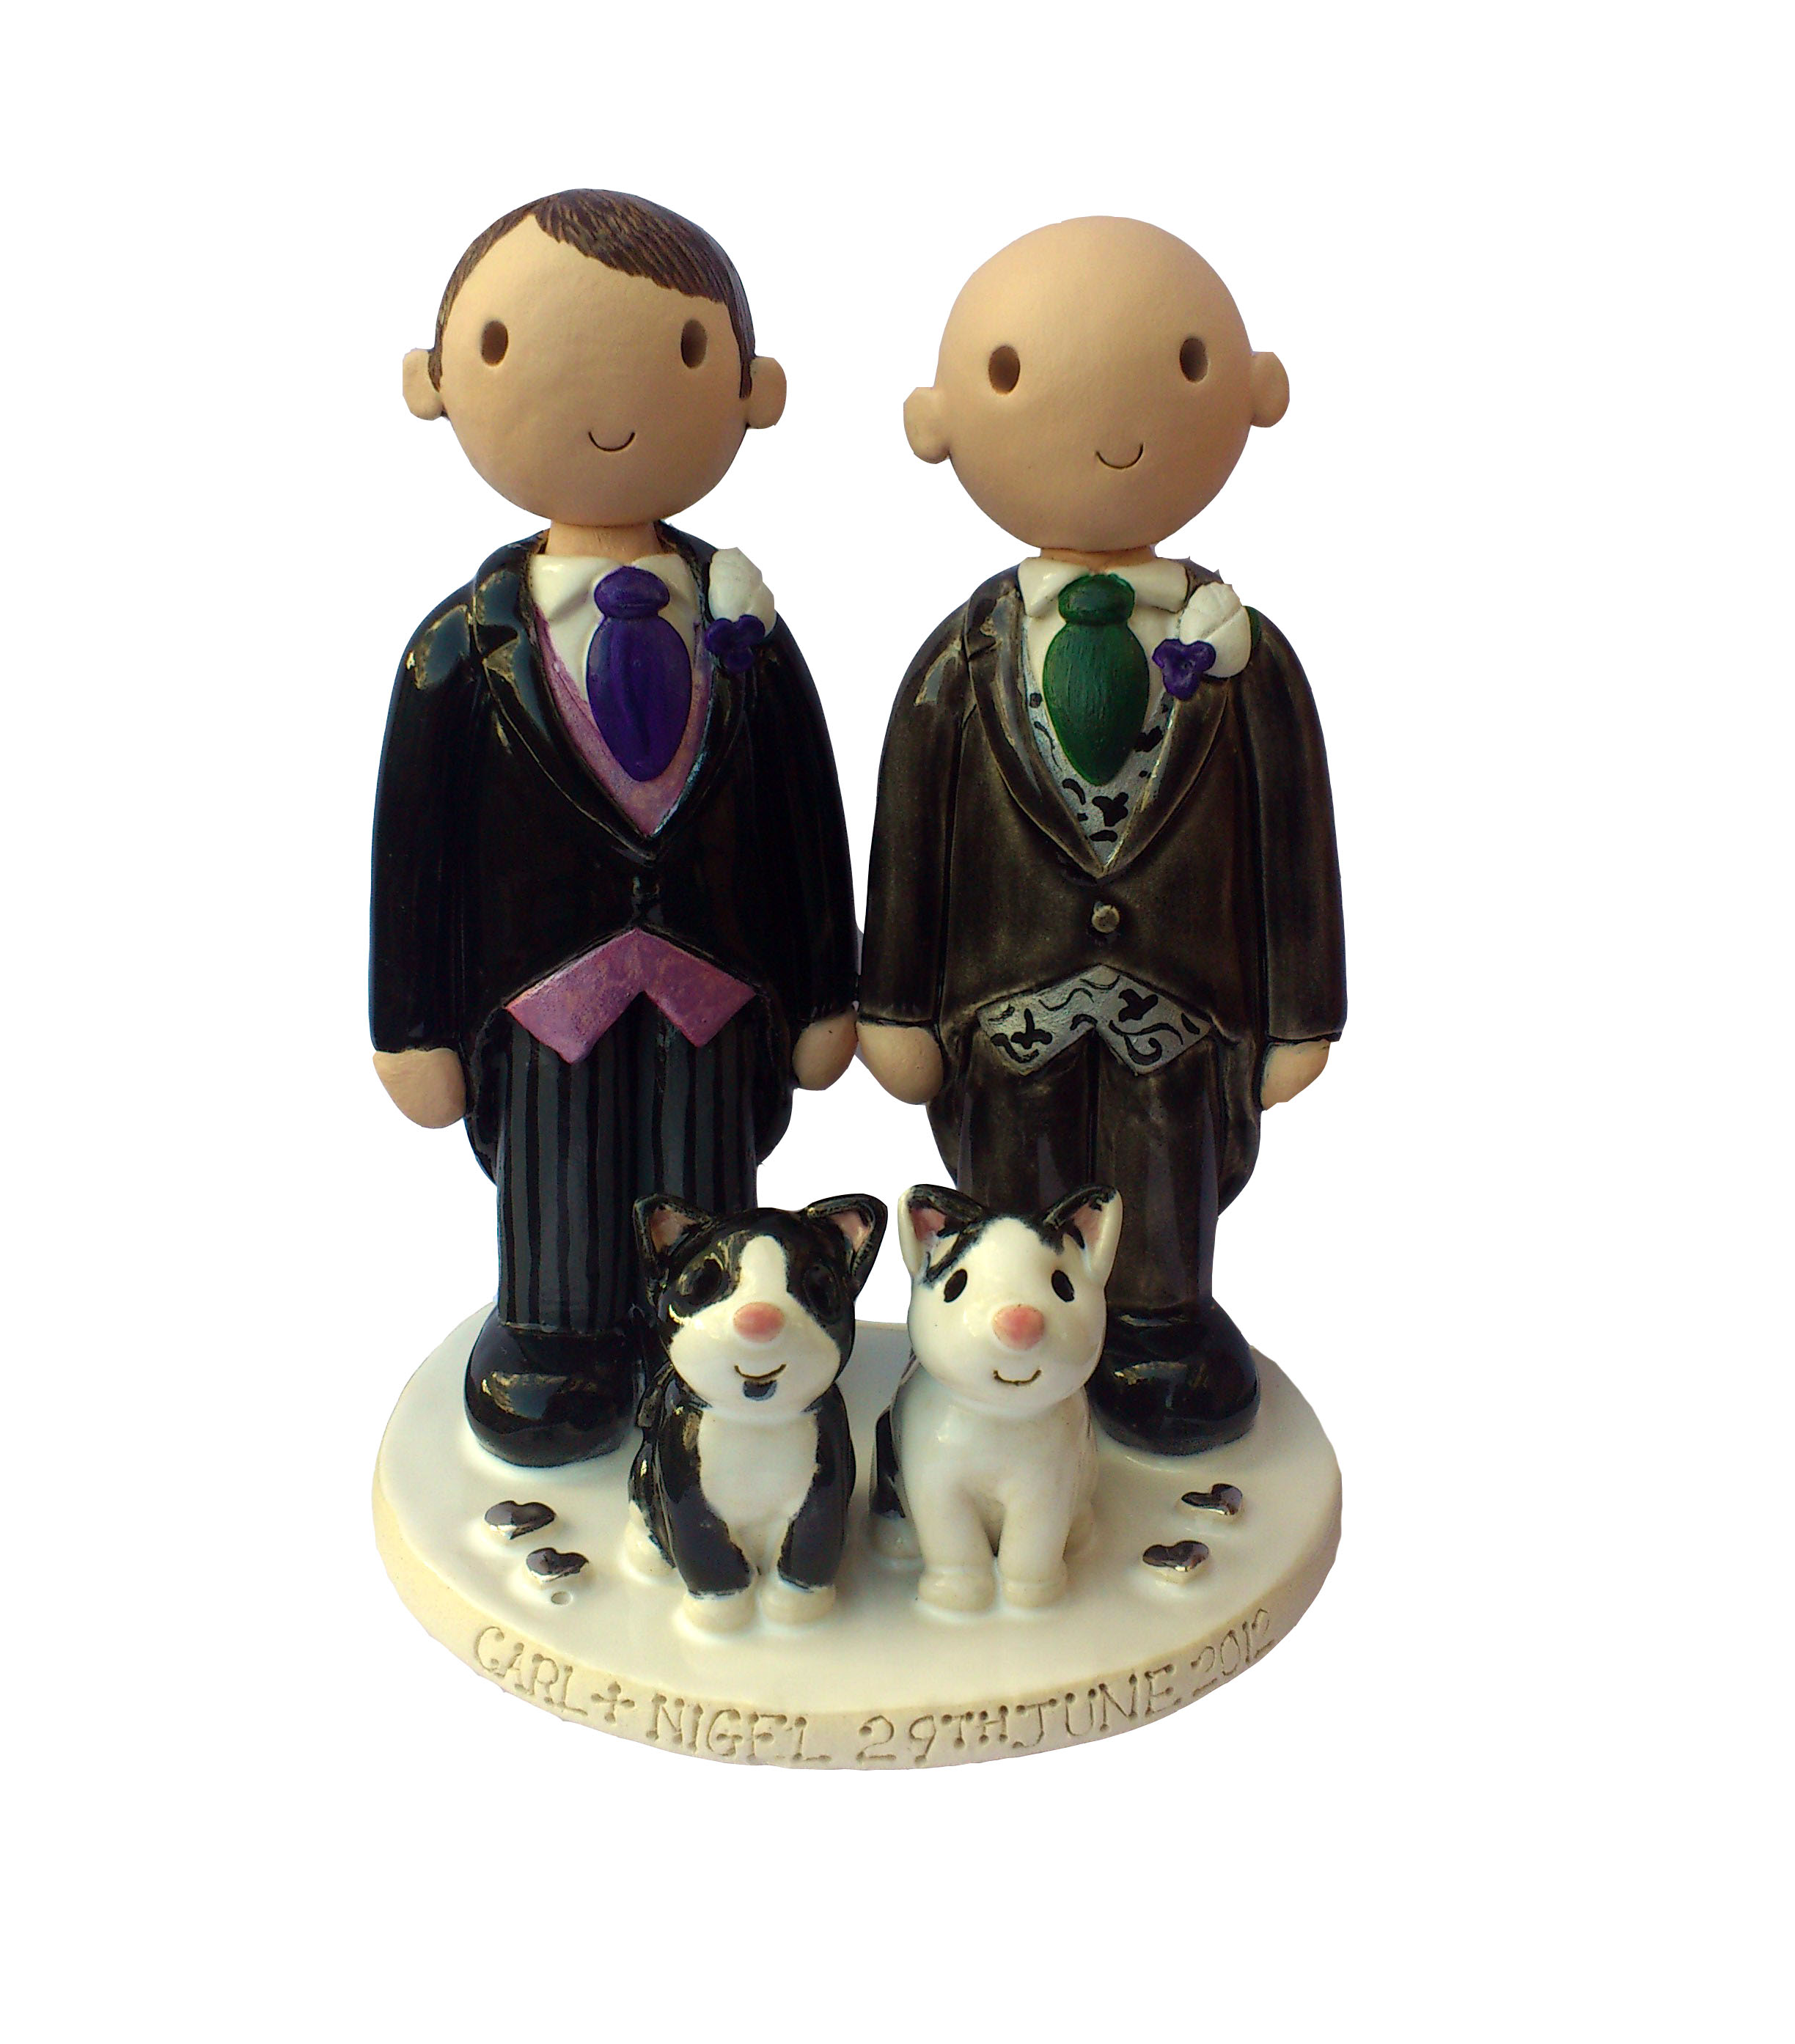 Cake Toppers In Uk : Weddings - 3/4 - Cake Toppers